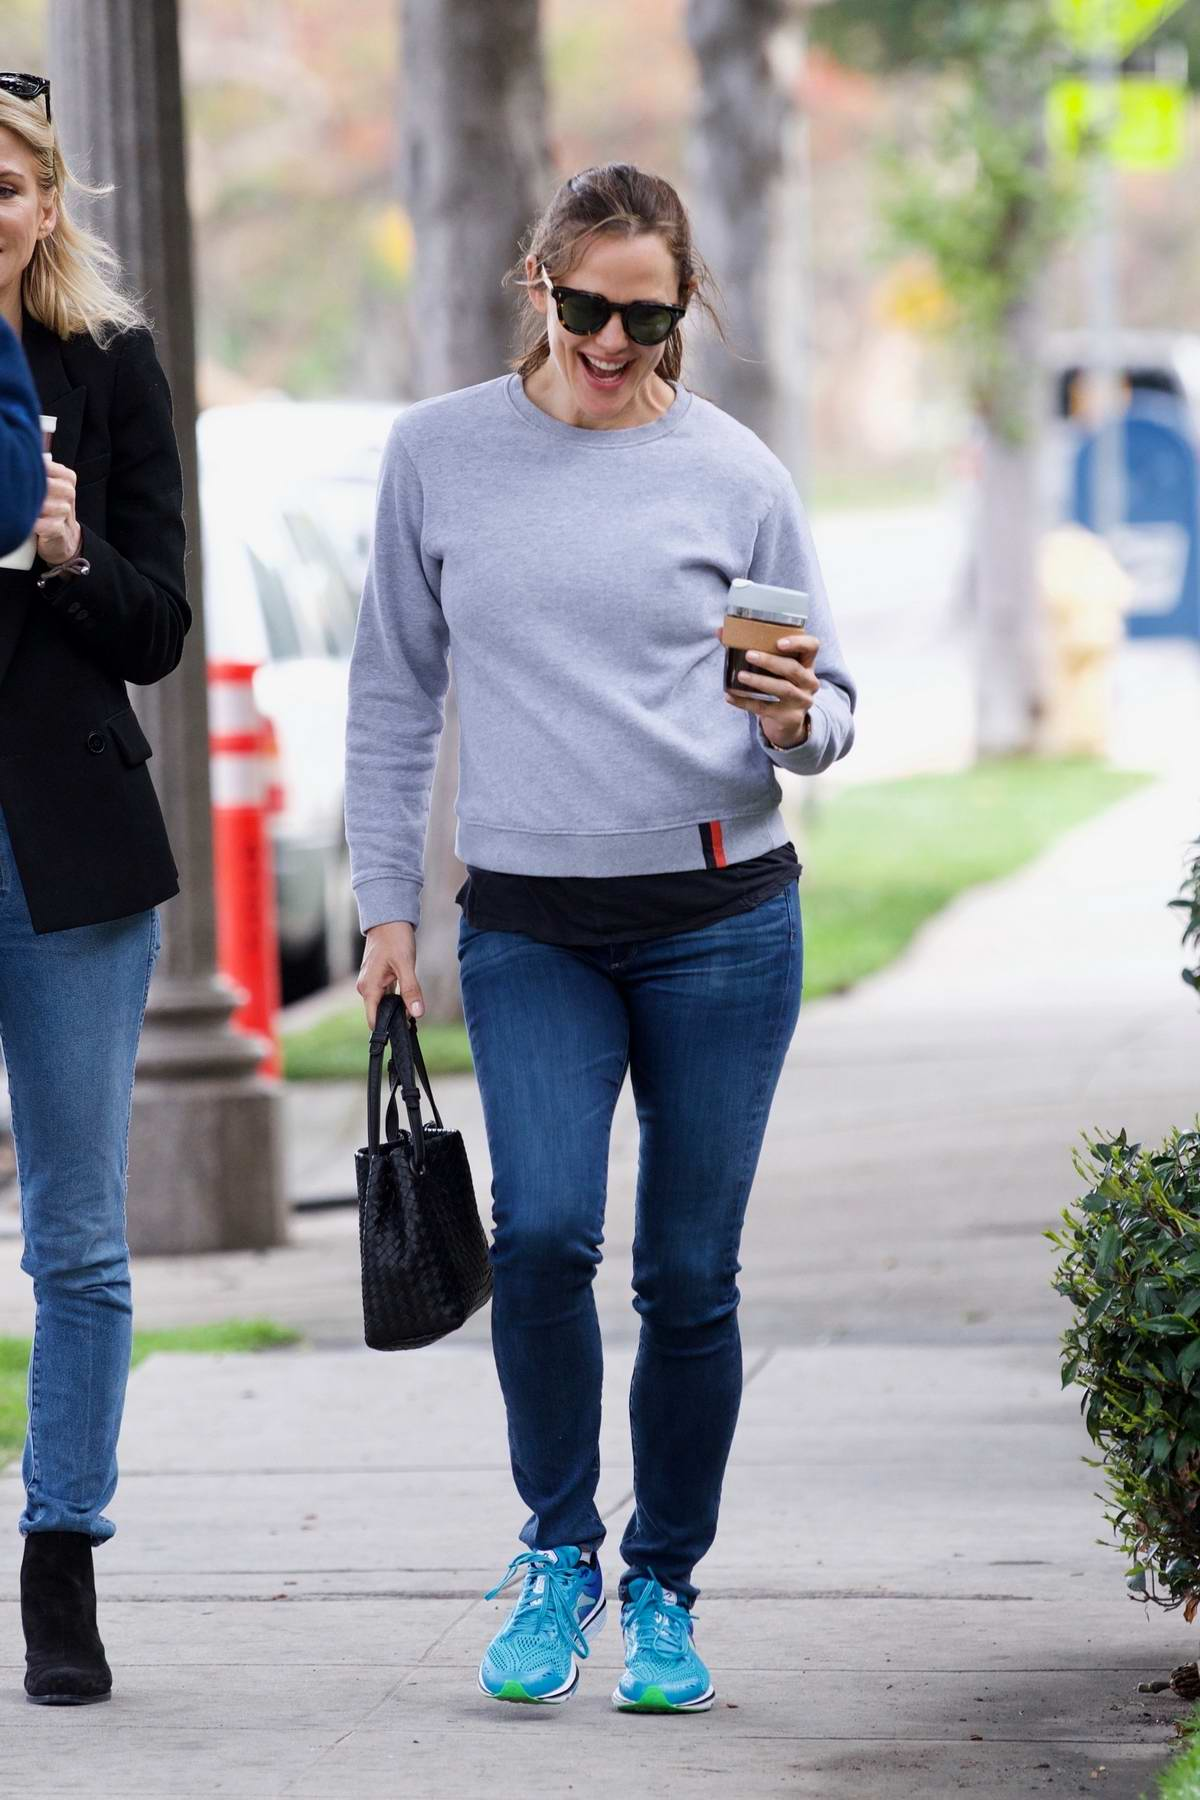 Jennifer Garner is all smiles while out grabbing coffee with her friend In Brentwood, Los Angeles